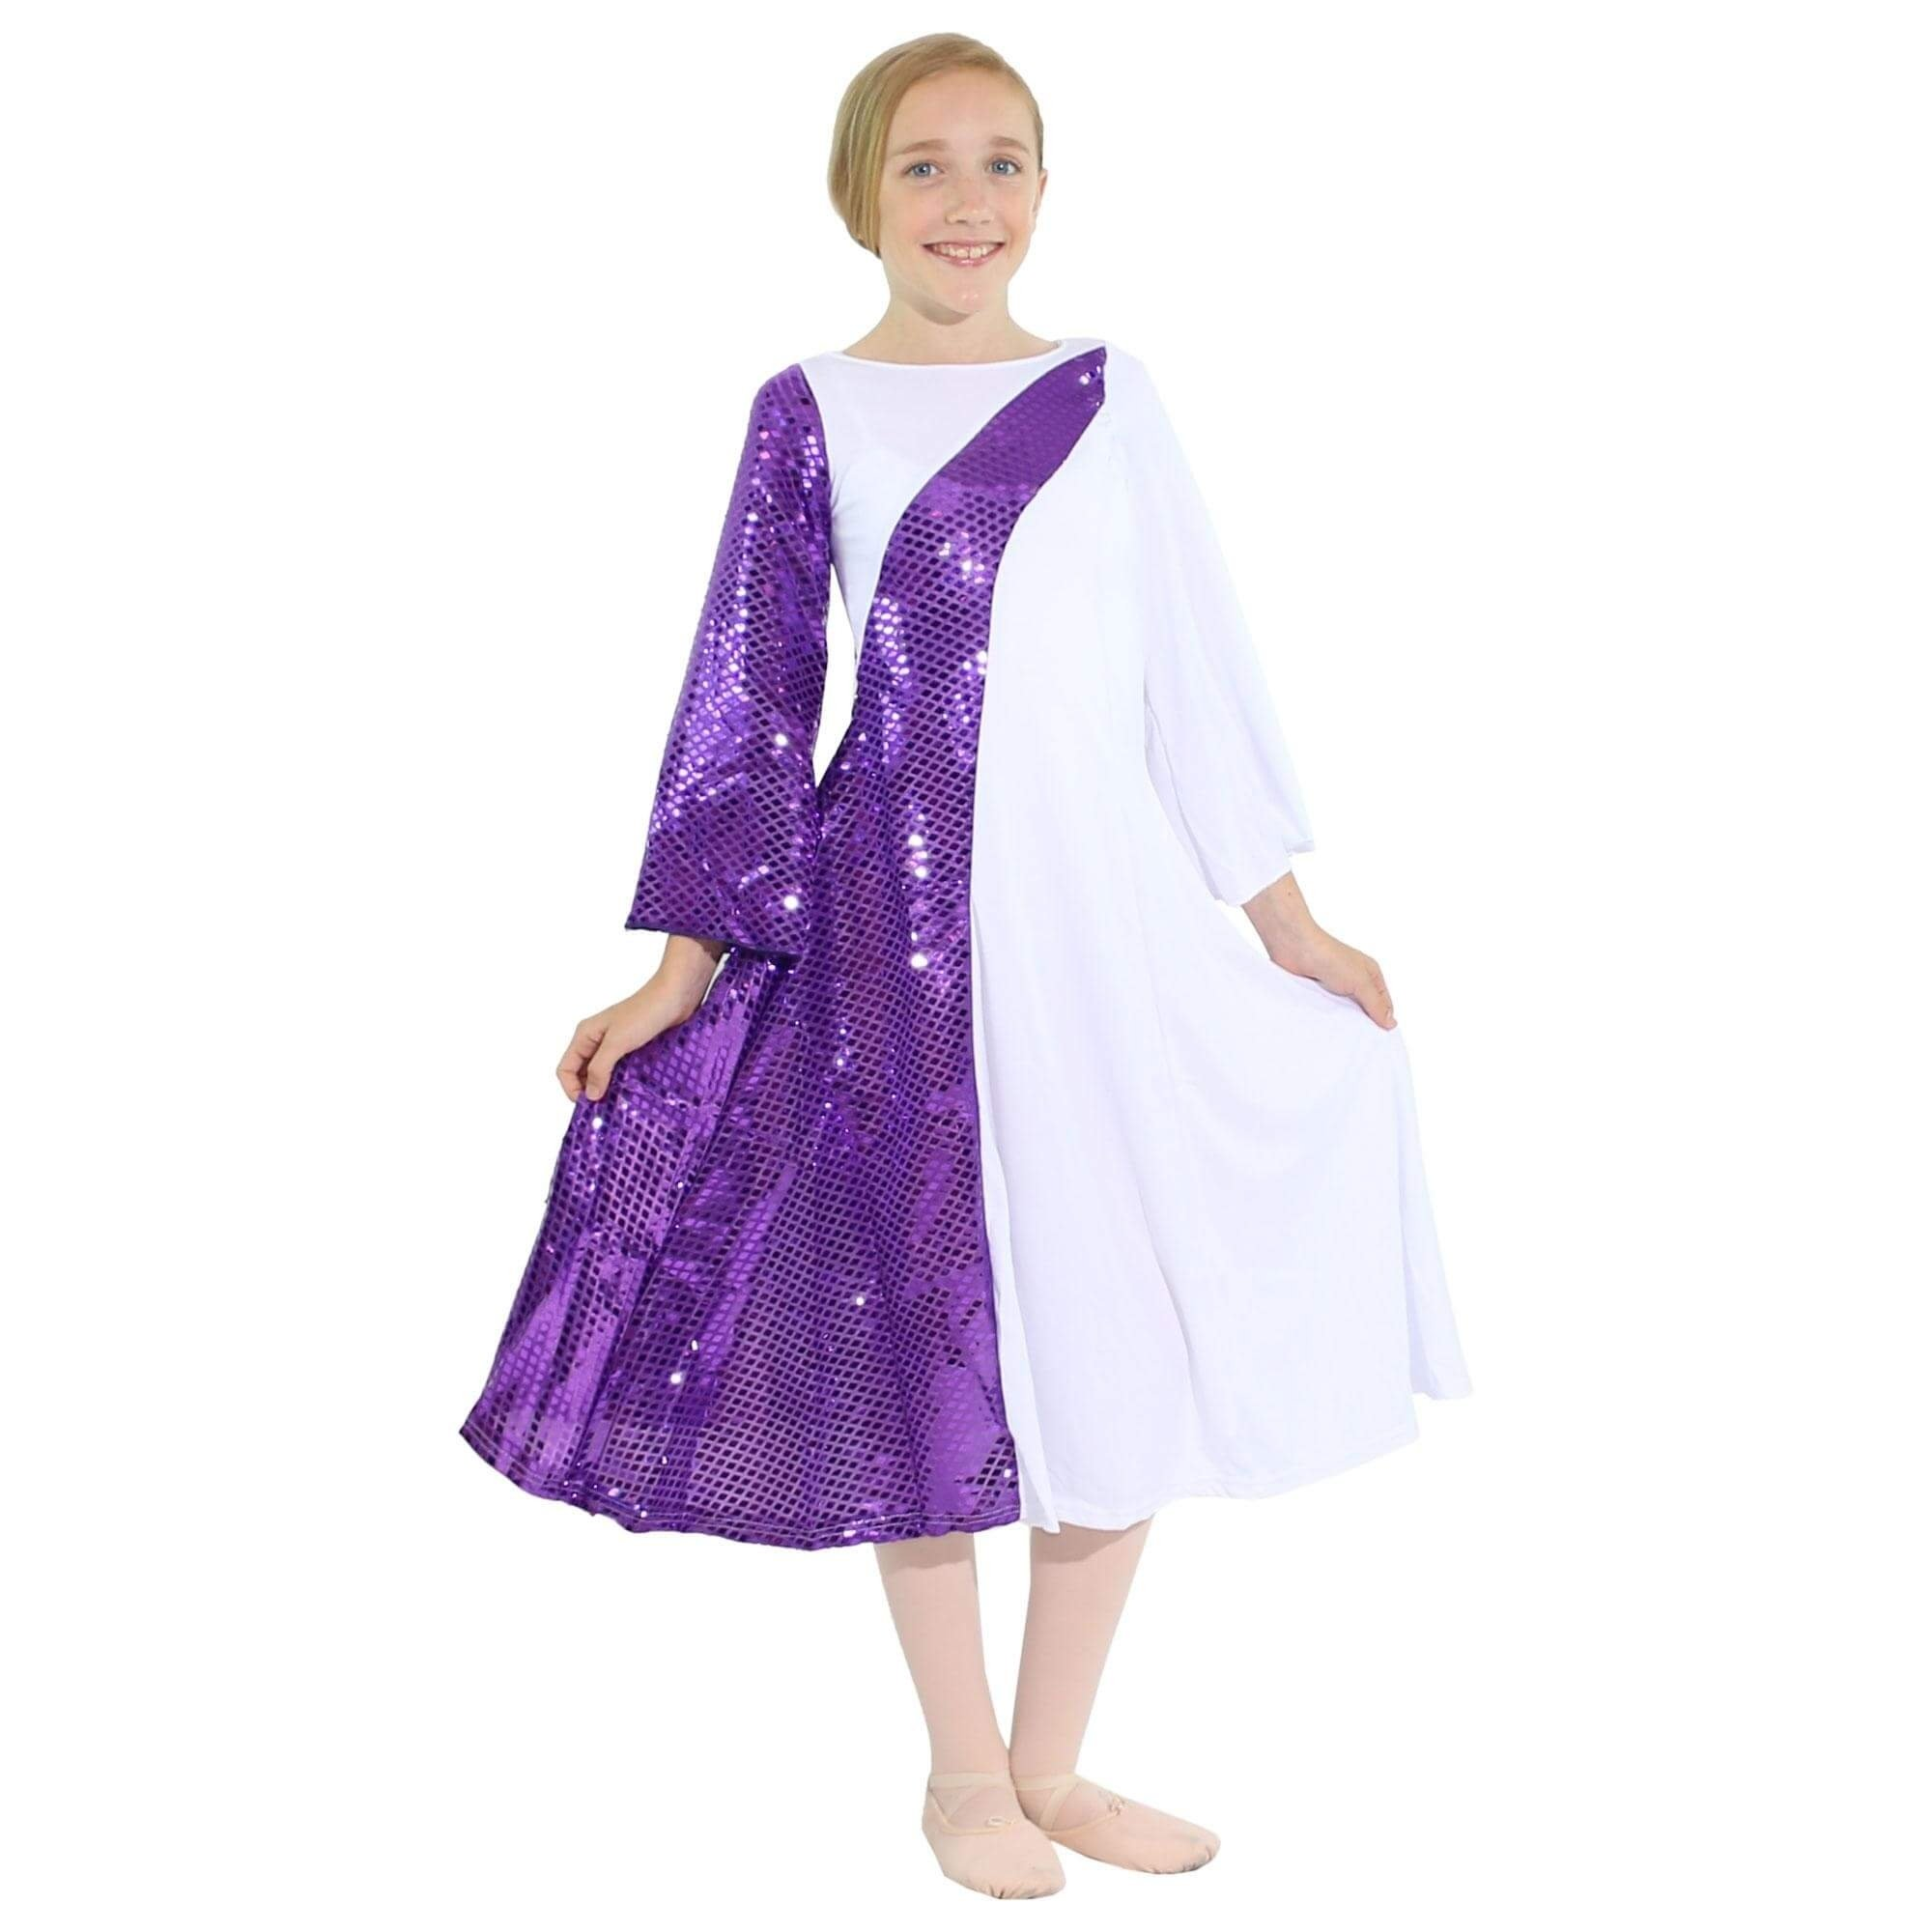 Danzcue White/Metallic Deep Purple Asymmetrical Bell Sleeve Child Dance Dress